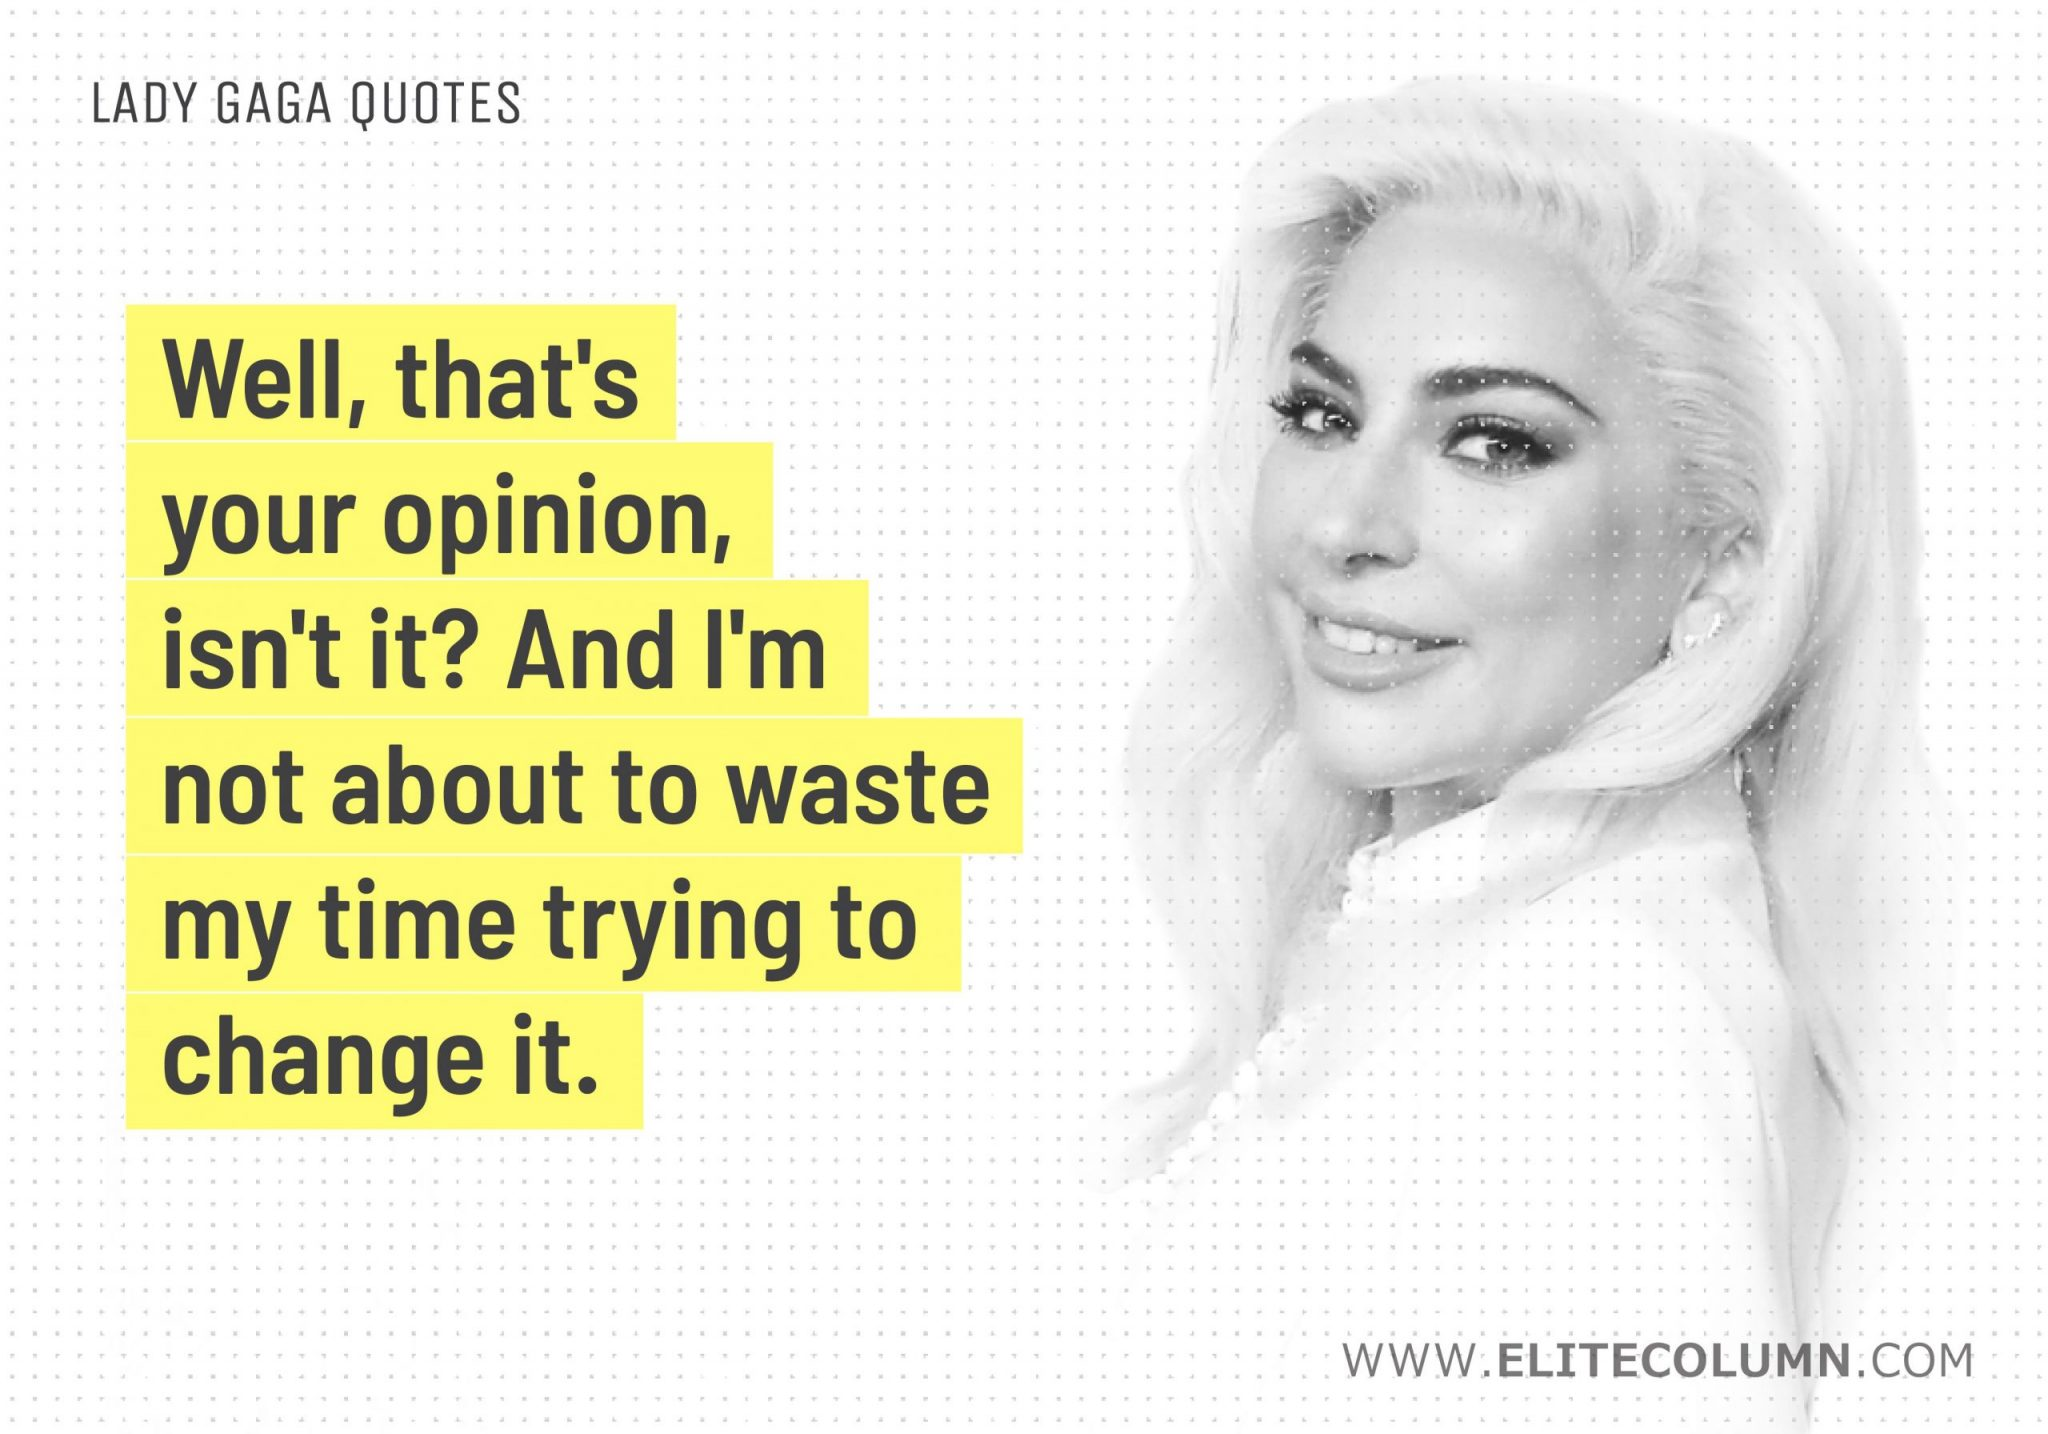 Lady Gaga Quotes (5)